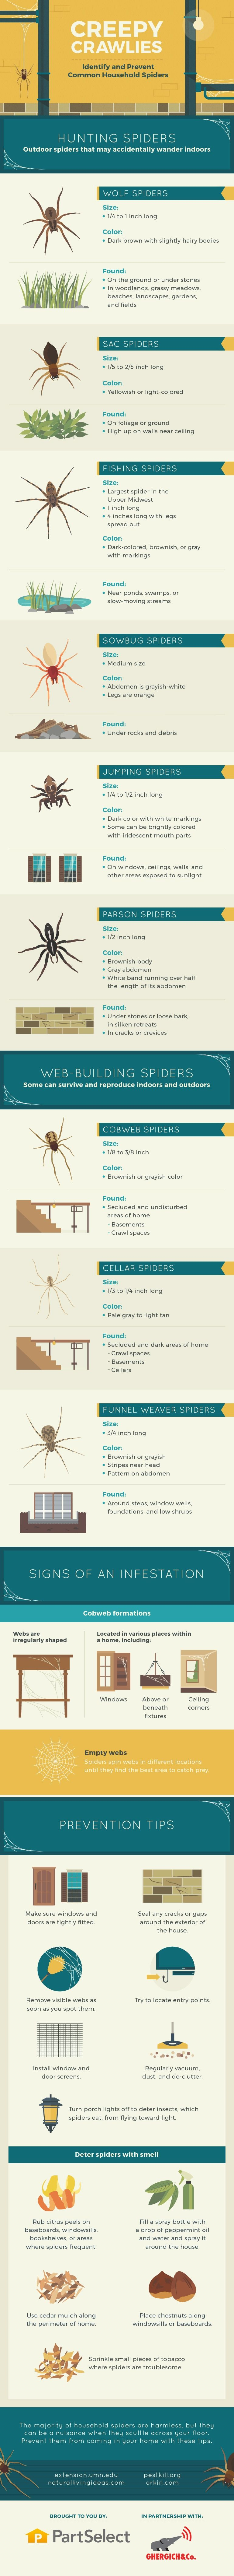 Creepy Crawlies: Common Household Spiders and Prevention Tips #Infographic